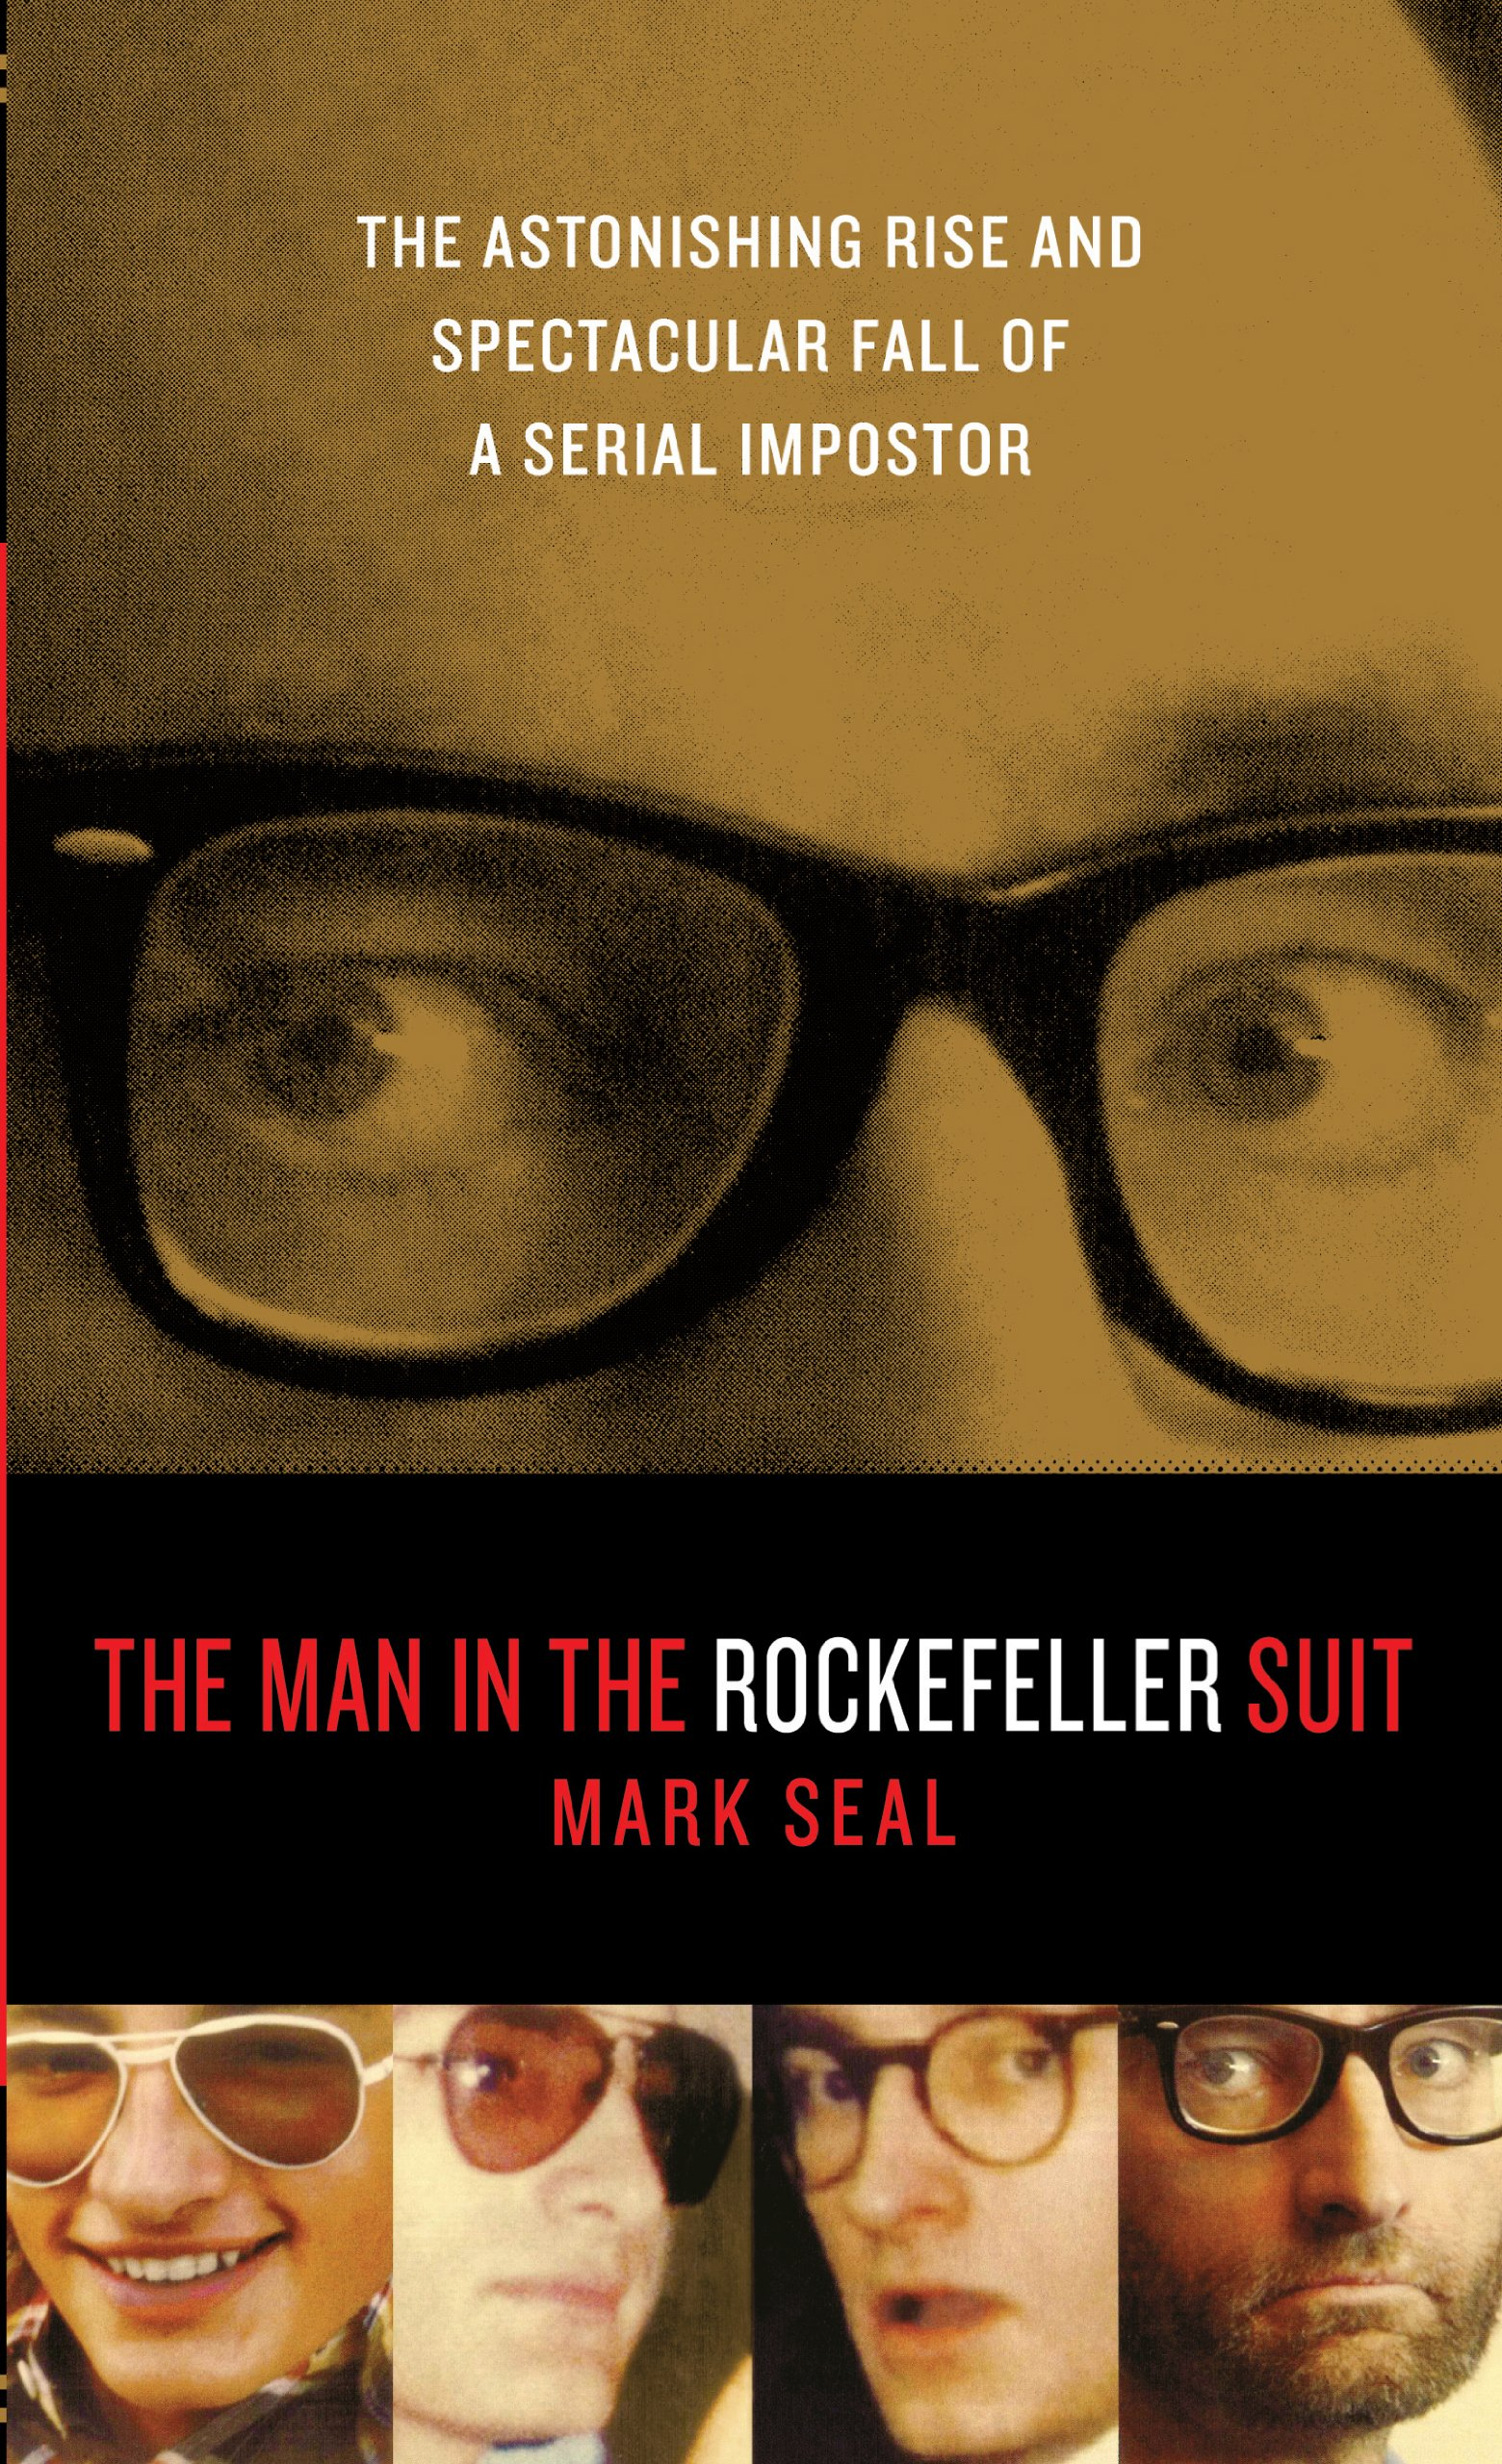 Download The Man in the Rockefeller Suit: The Astonishing Rise and Spectacular Fall of a Serial Imposter (Thorndike Press Large Print Biography Series) pdf epub